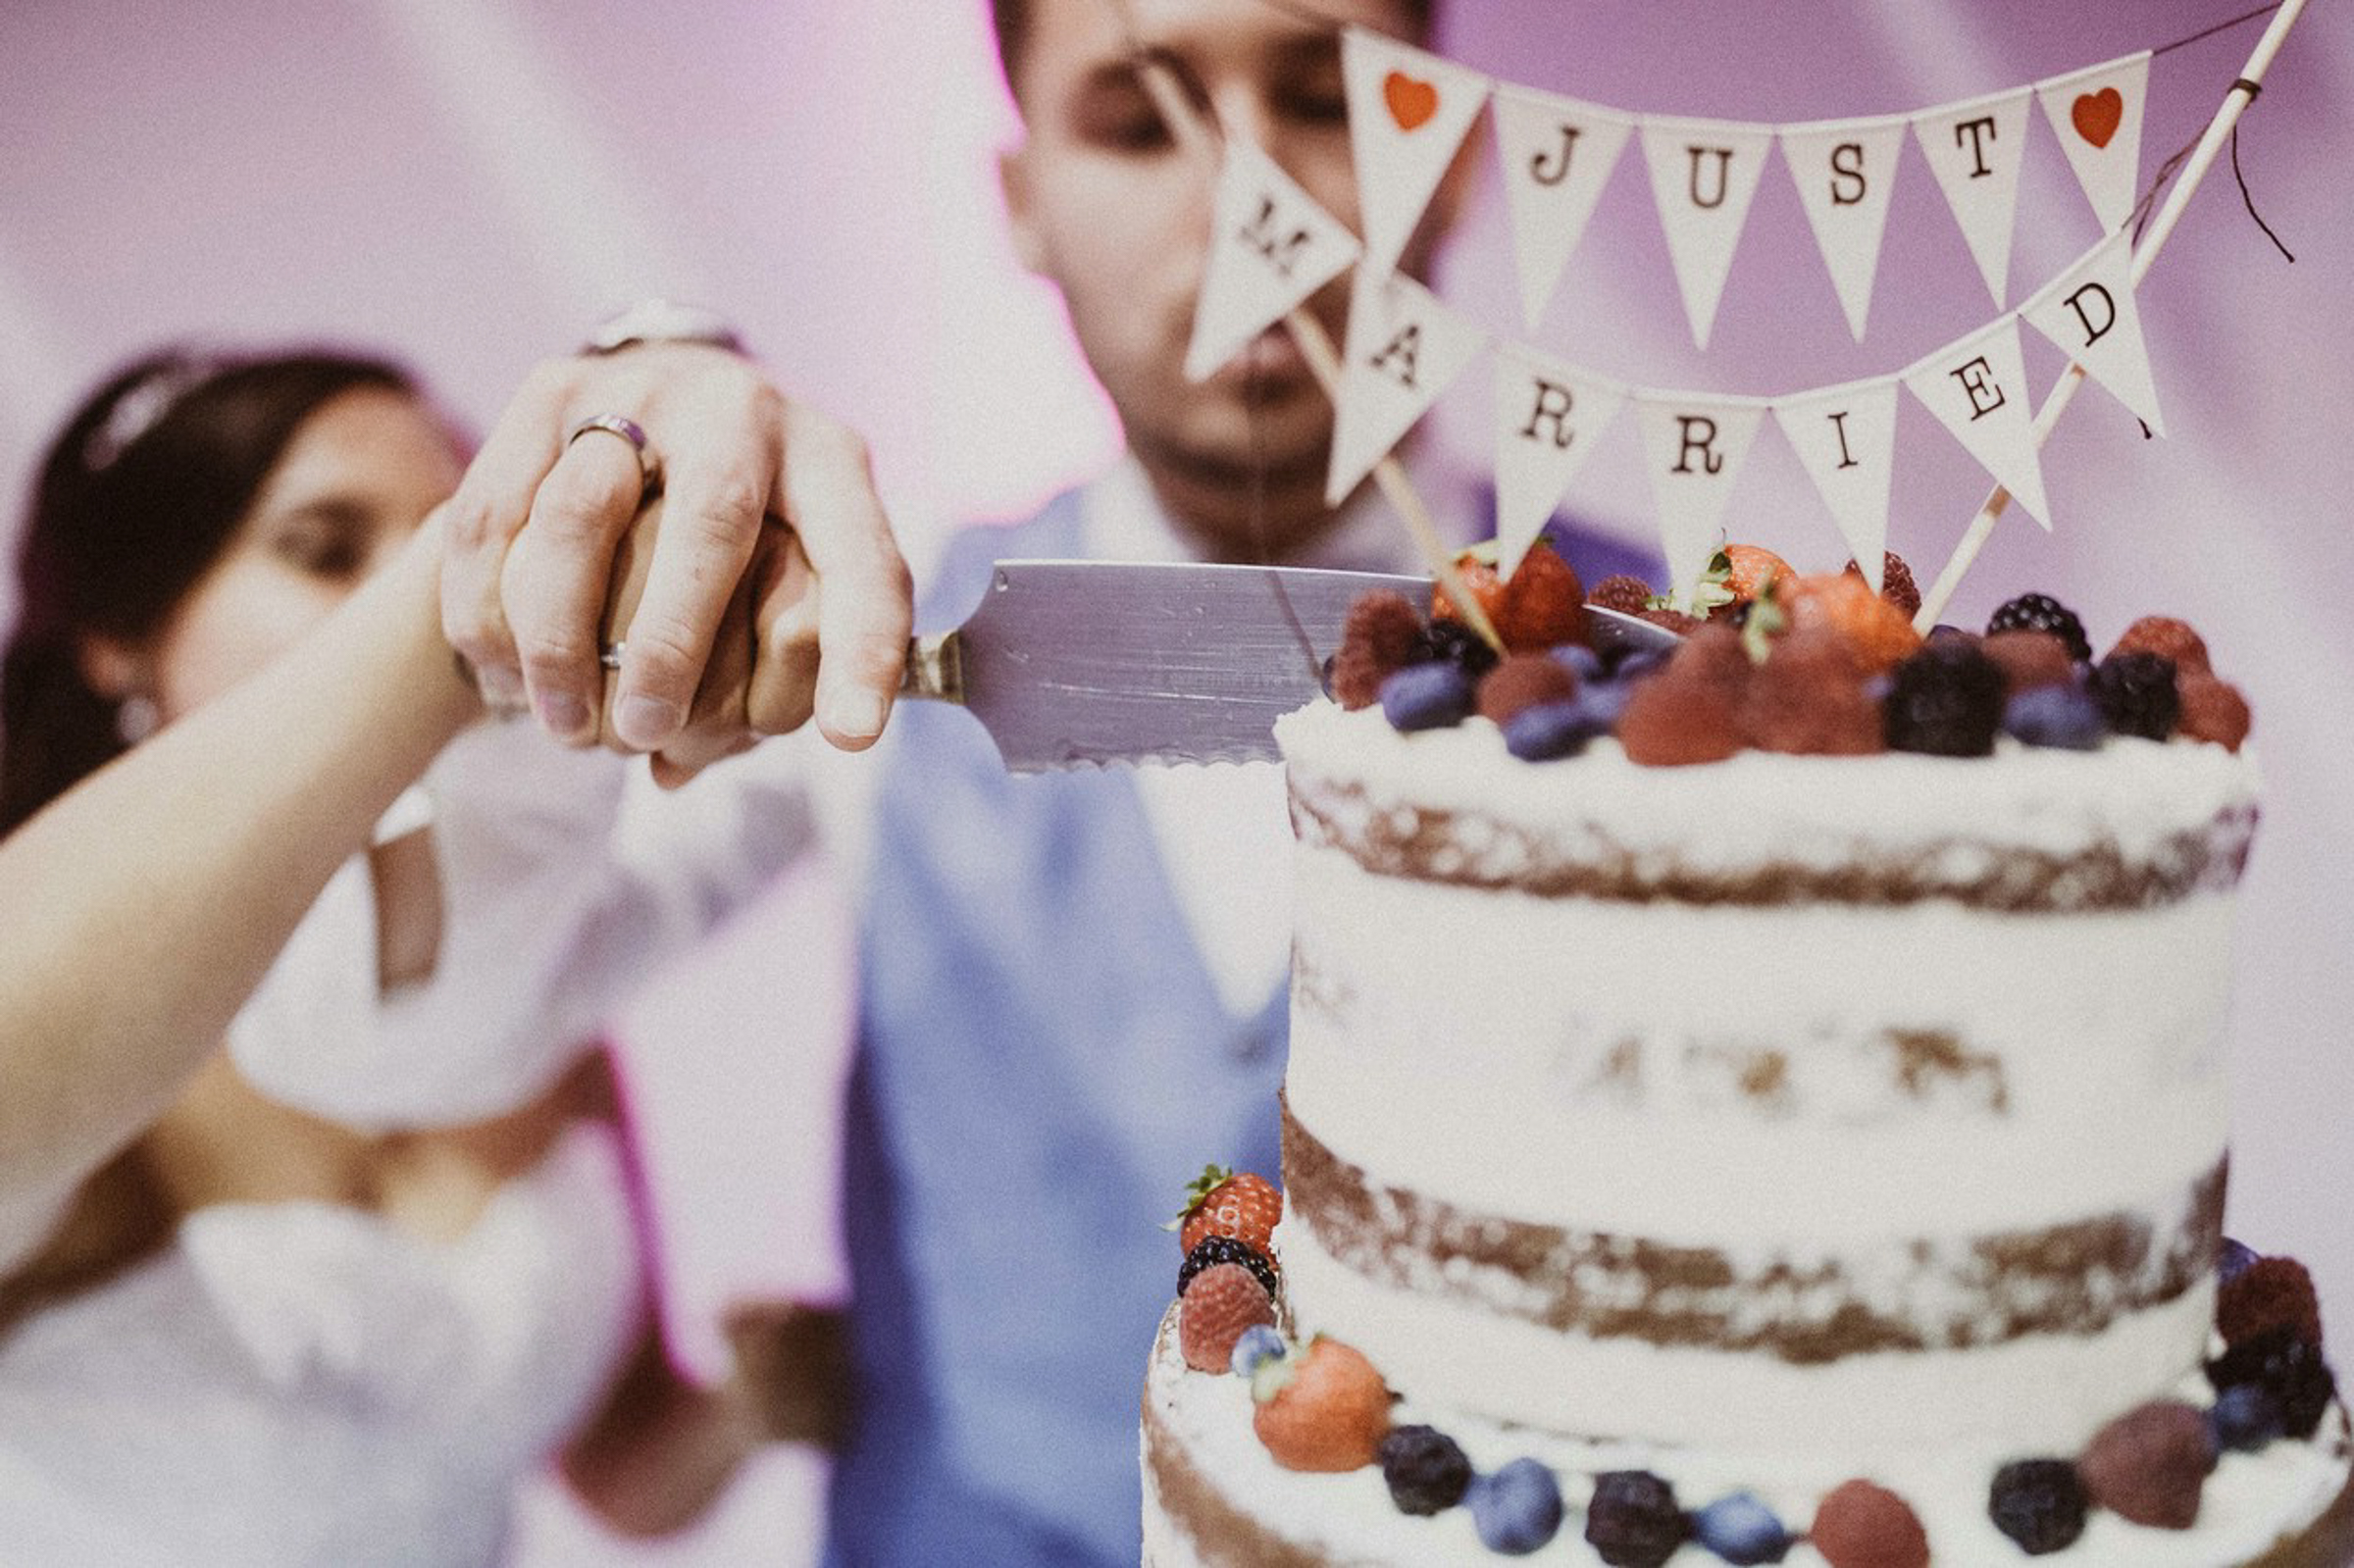 bride and groom cutting the cake full of berries- photo by FineArt Weddings | Photography